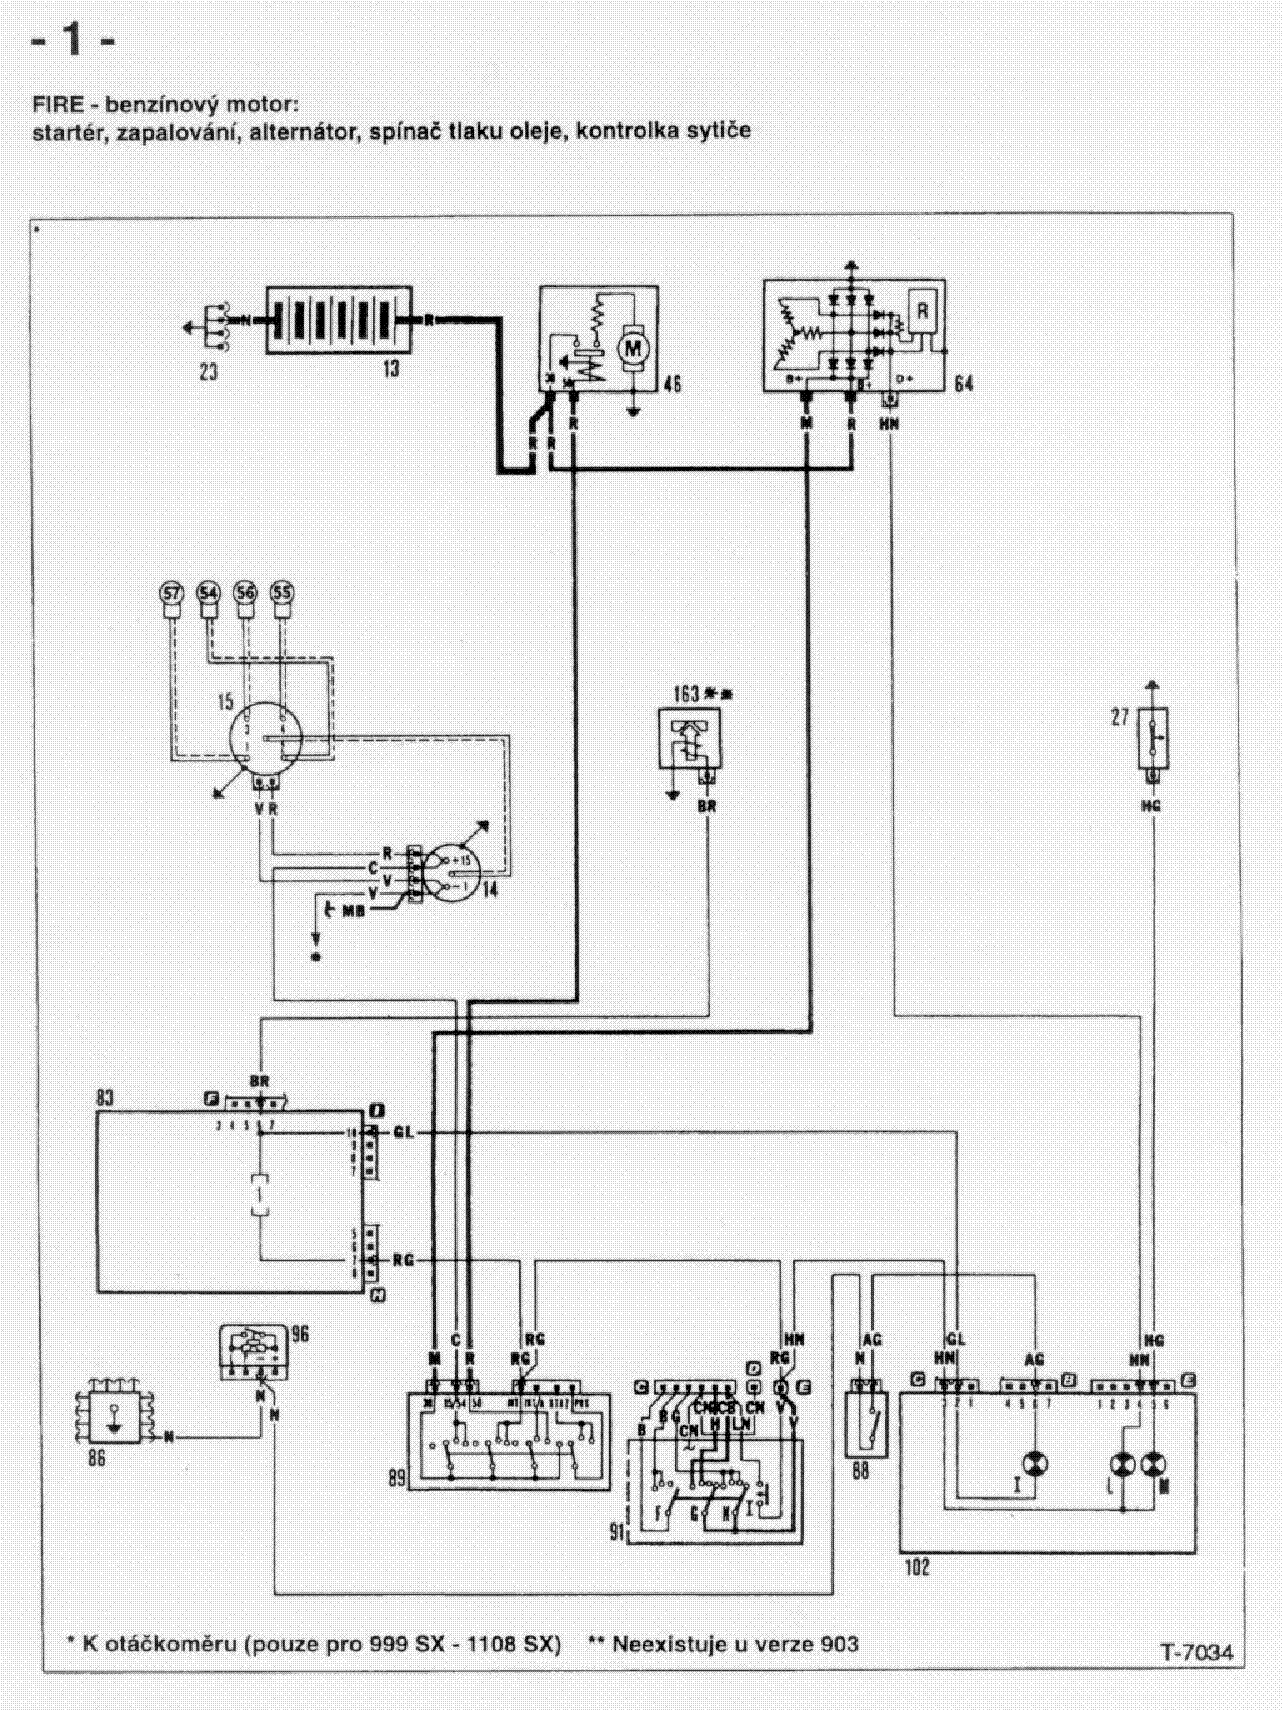 hight resolution of fiat uno wiring diagram service manual download schematics eeprom rh elektrotanya com fiat grande punto wiring